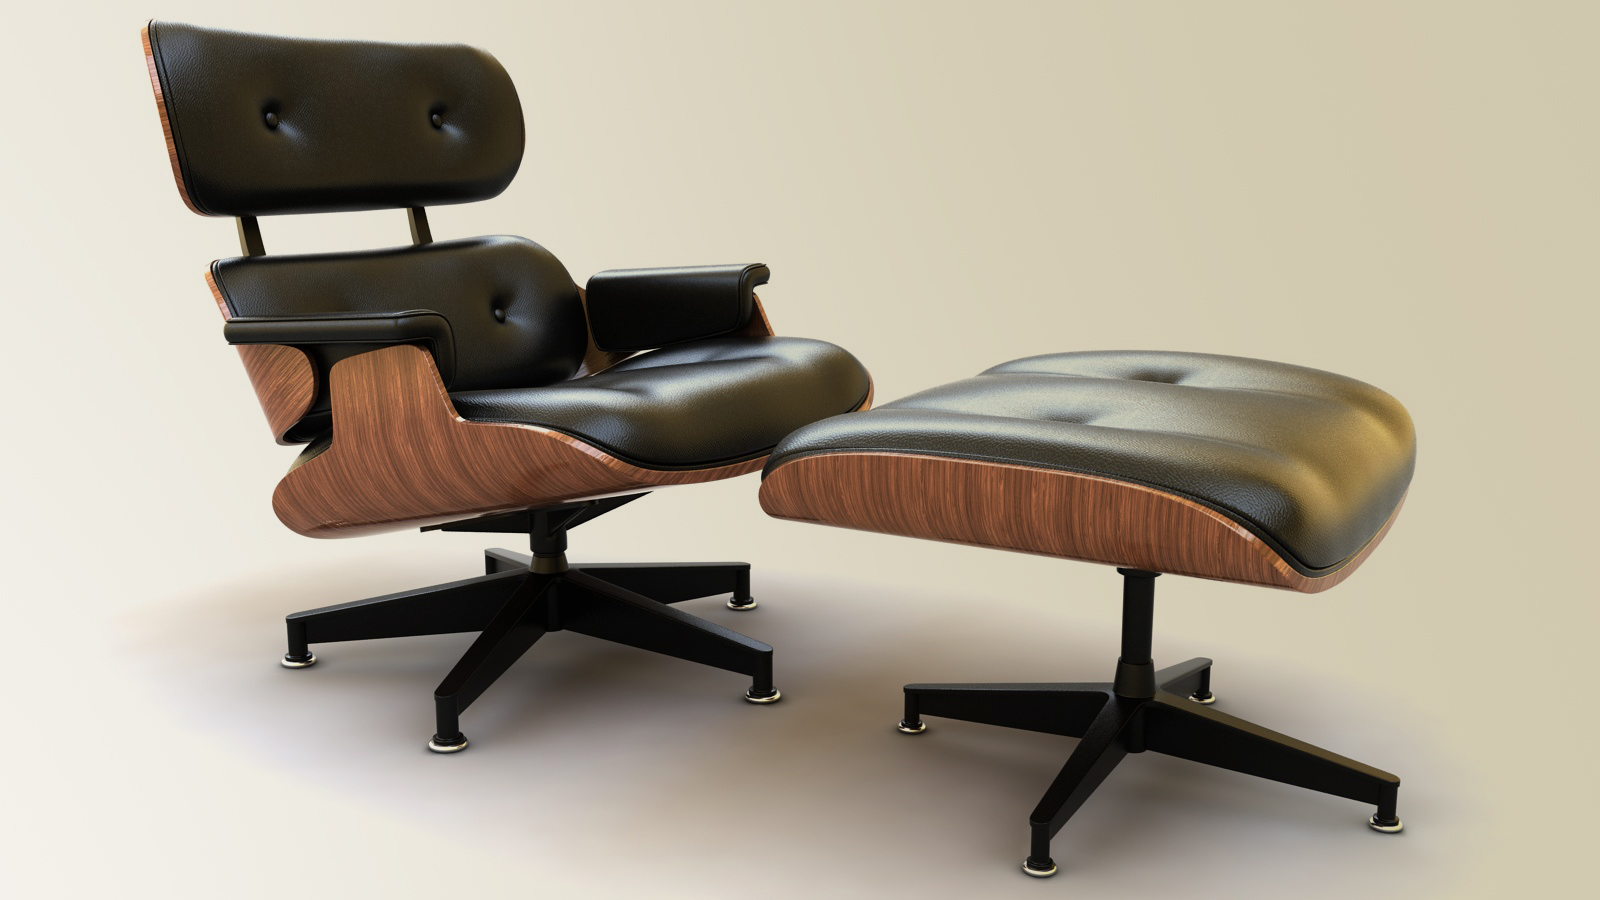 Eames Lounge Chair By Mithrasz On Deviantart